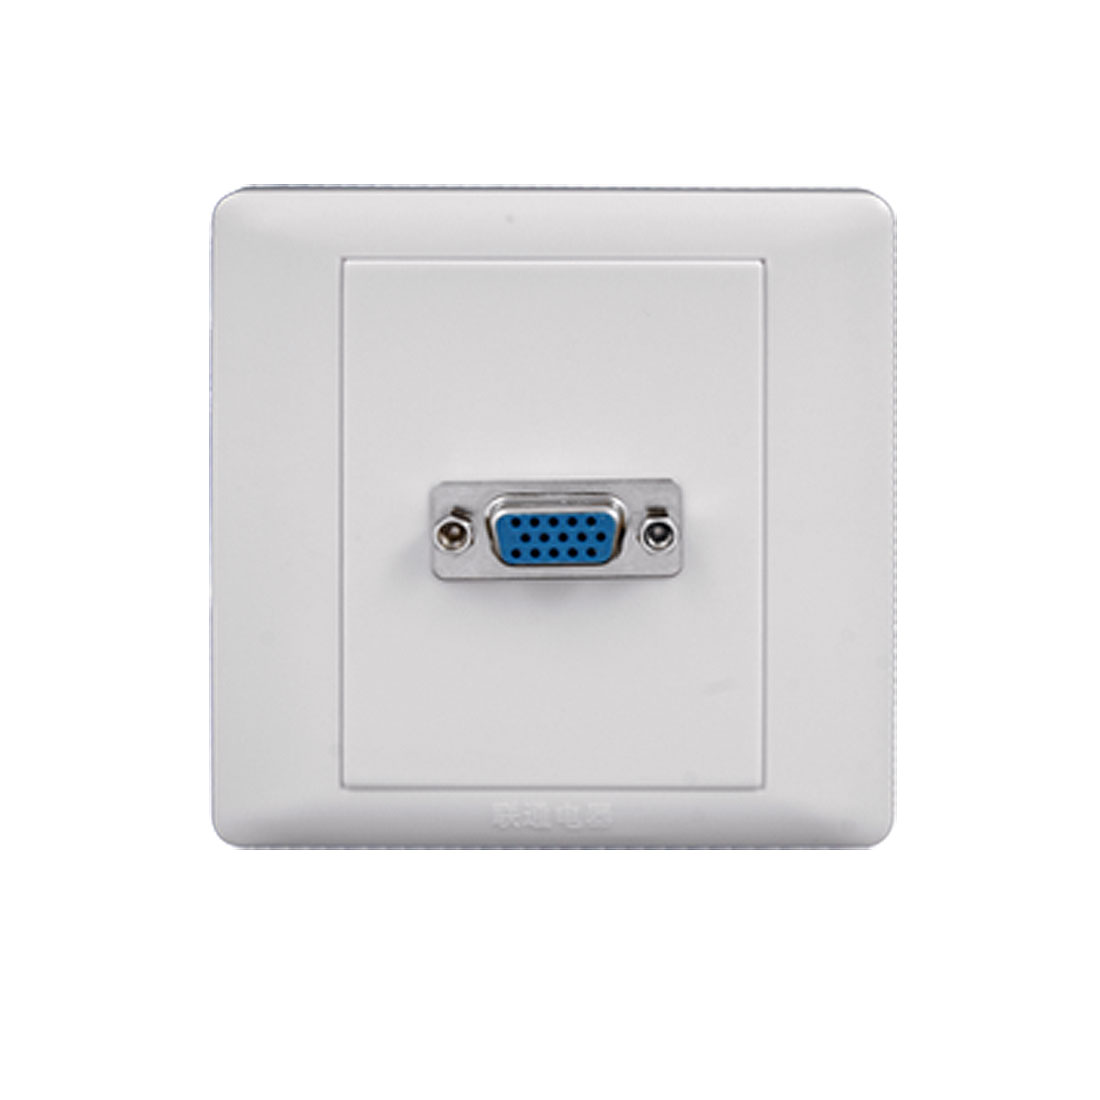 Wall Mounted White Square VGA Female Port Faceplate